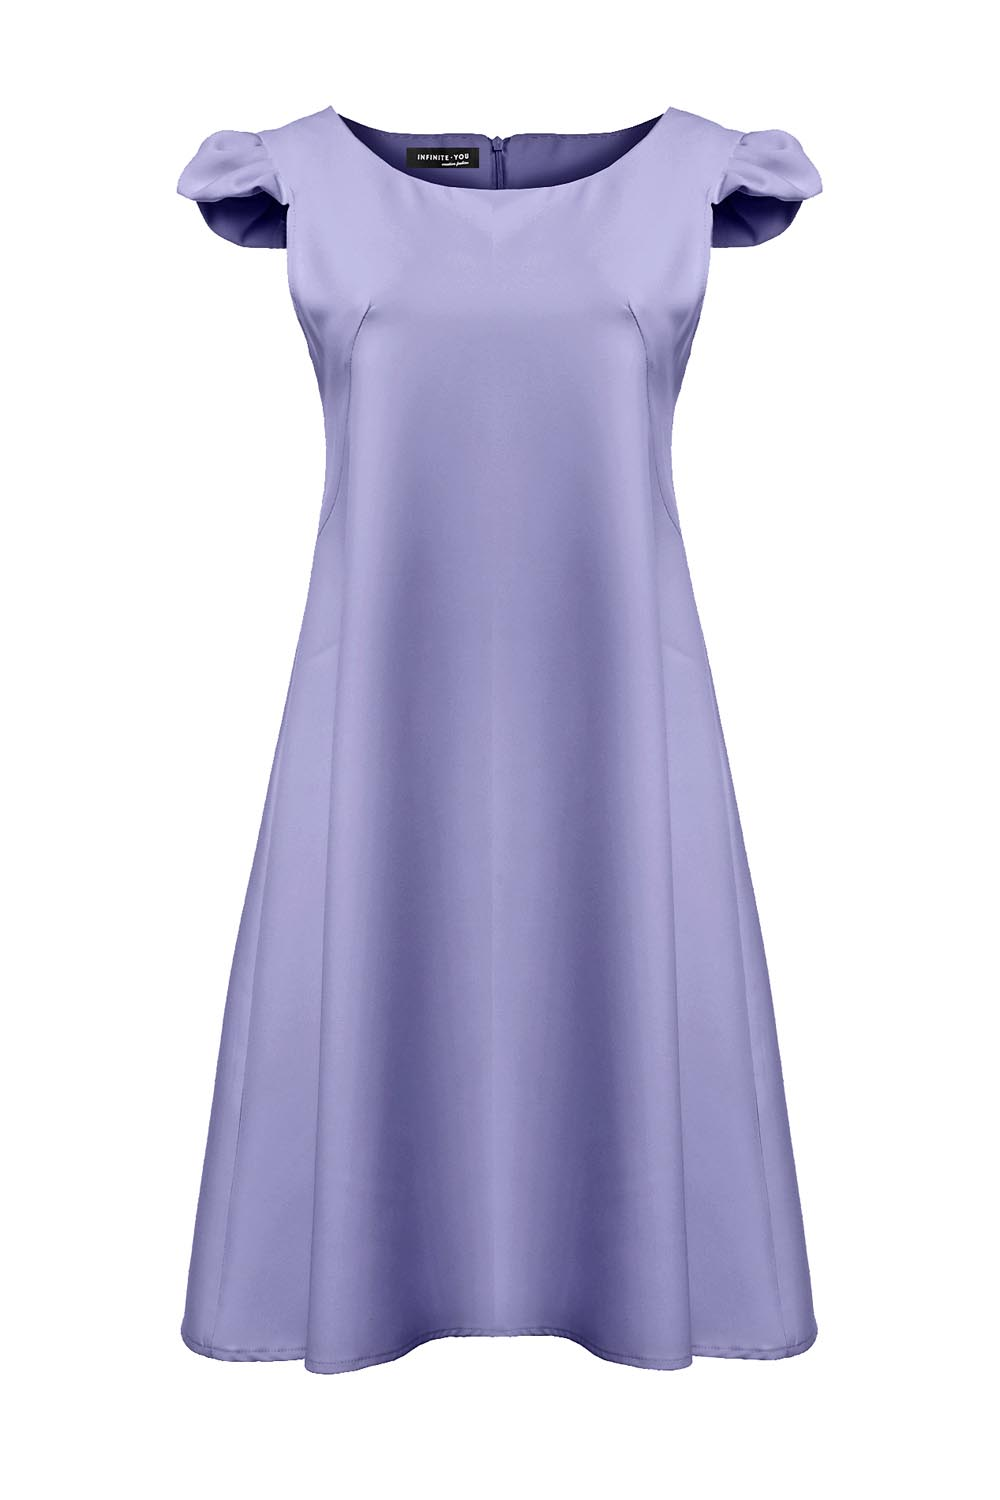 ethereal knee light short dress illusion chiffon blue sleeve cap length bridesmaid